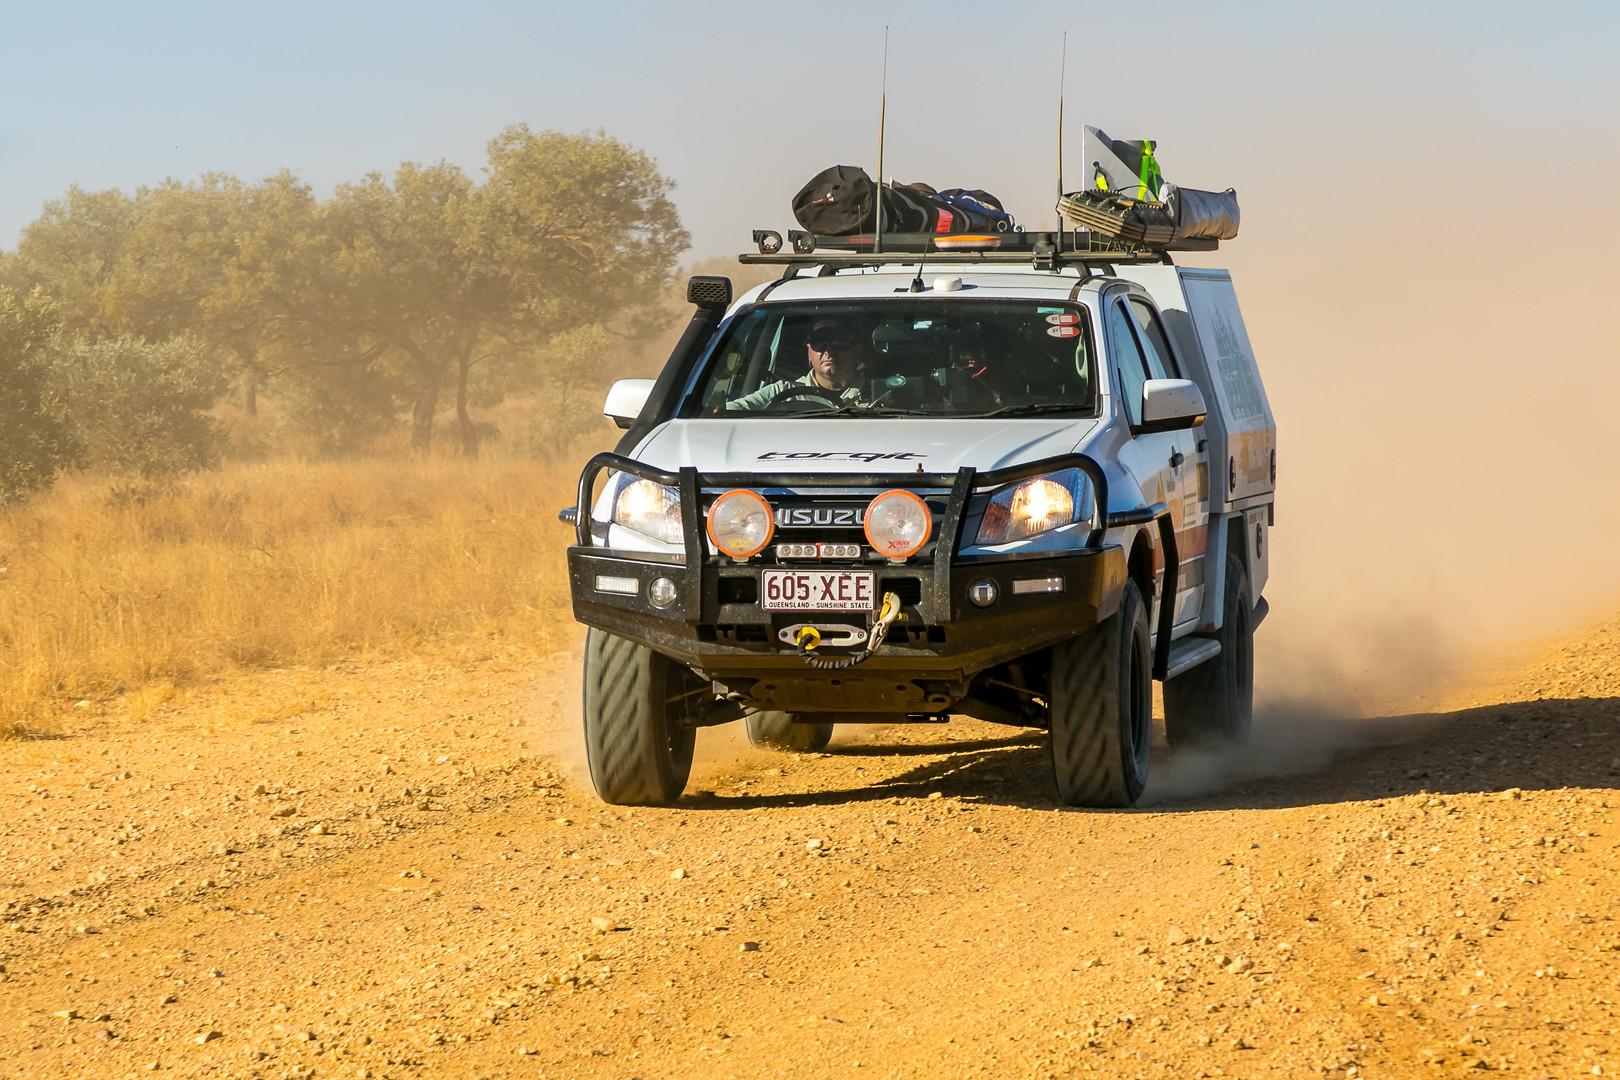 Driving in outback Australia